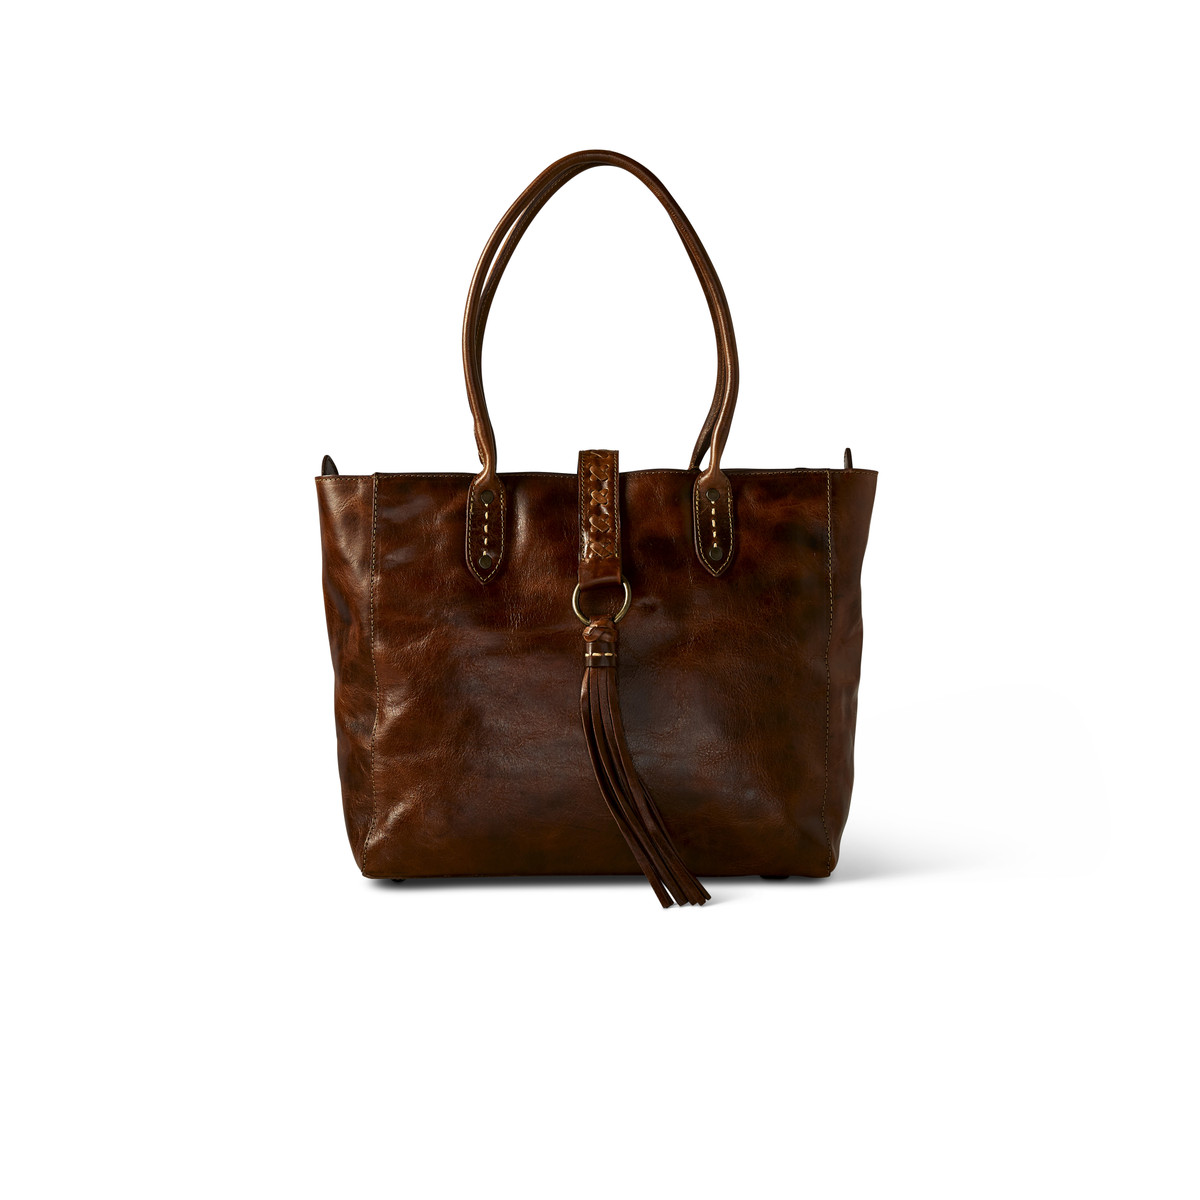 hand-brushed leather tote with its hand-braided leather and tassel fringe represents Western elegance at its best